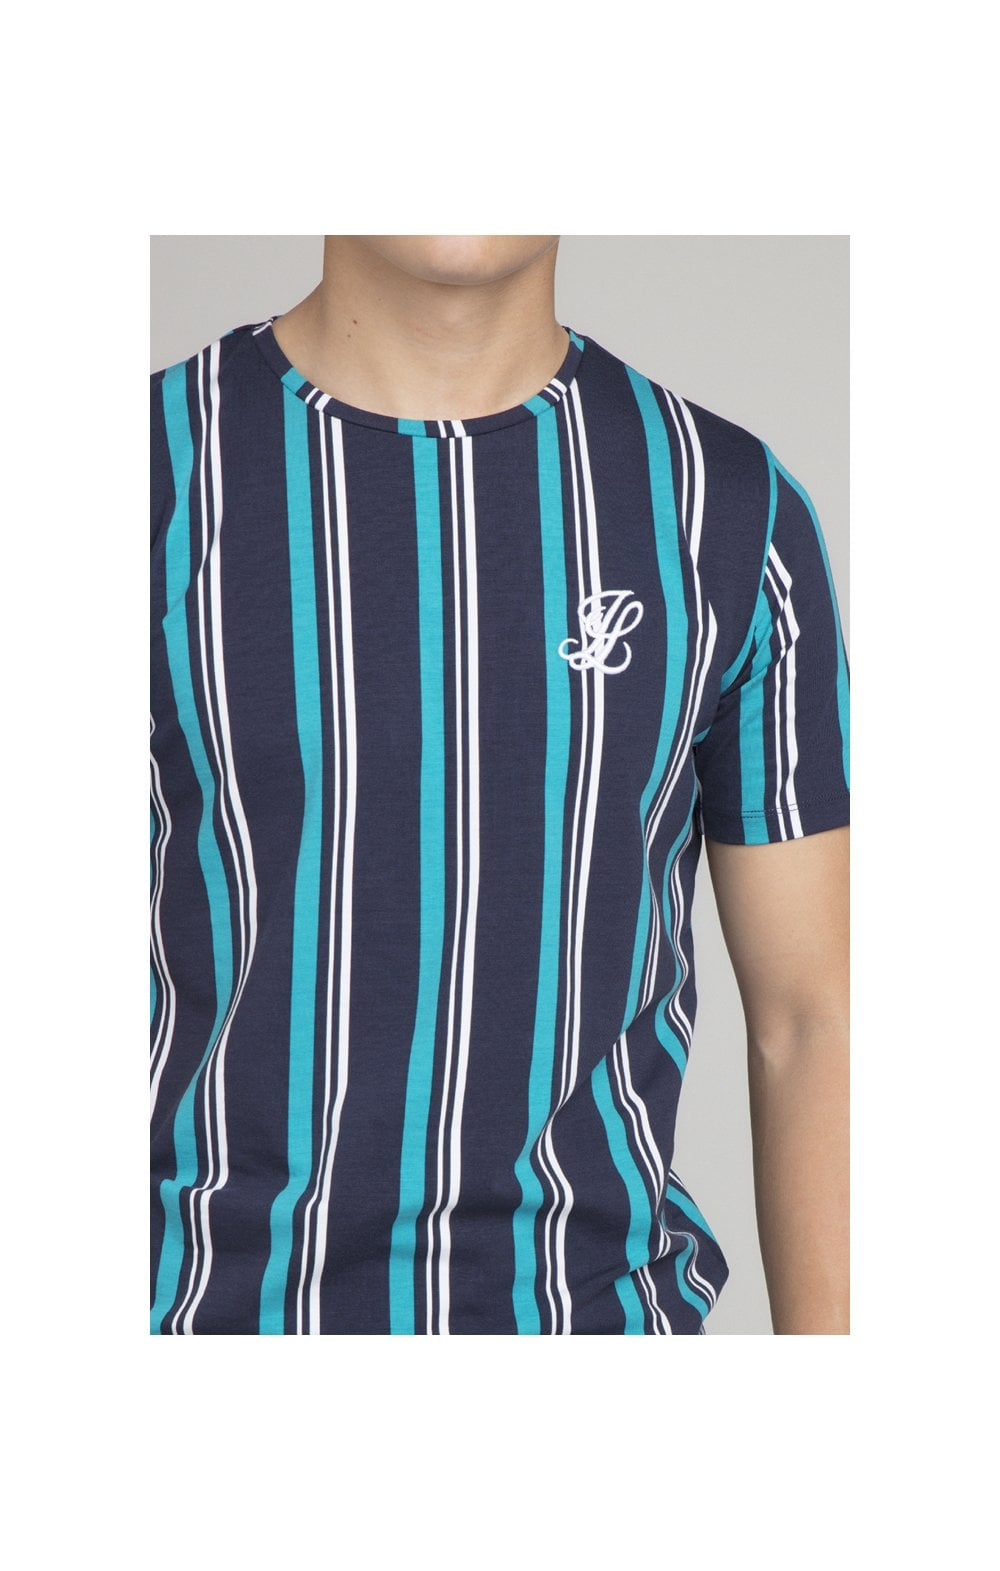 Load image into Gallery viewer, Illusive London Stripe Tee - Navy & Teal (2)